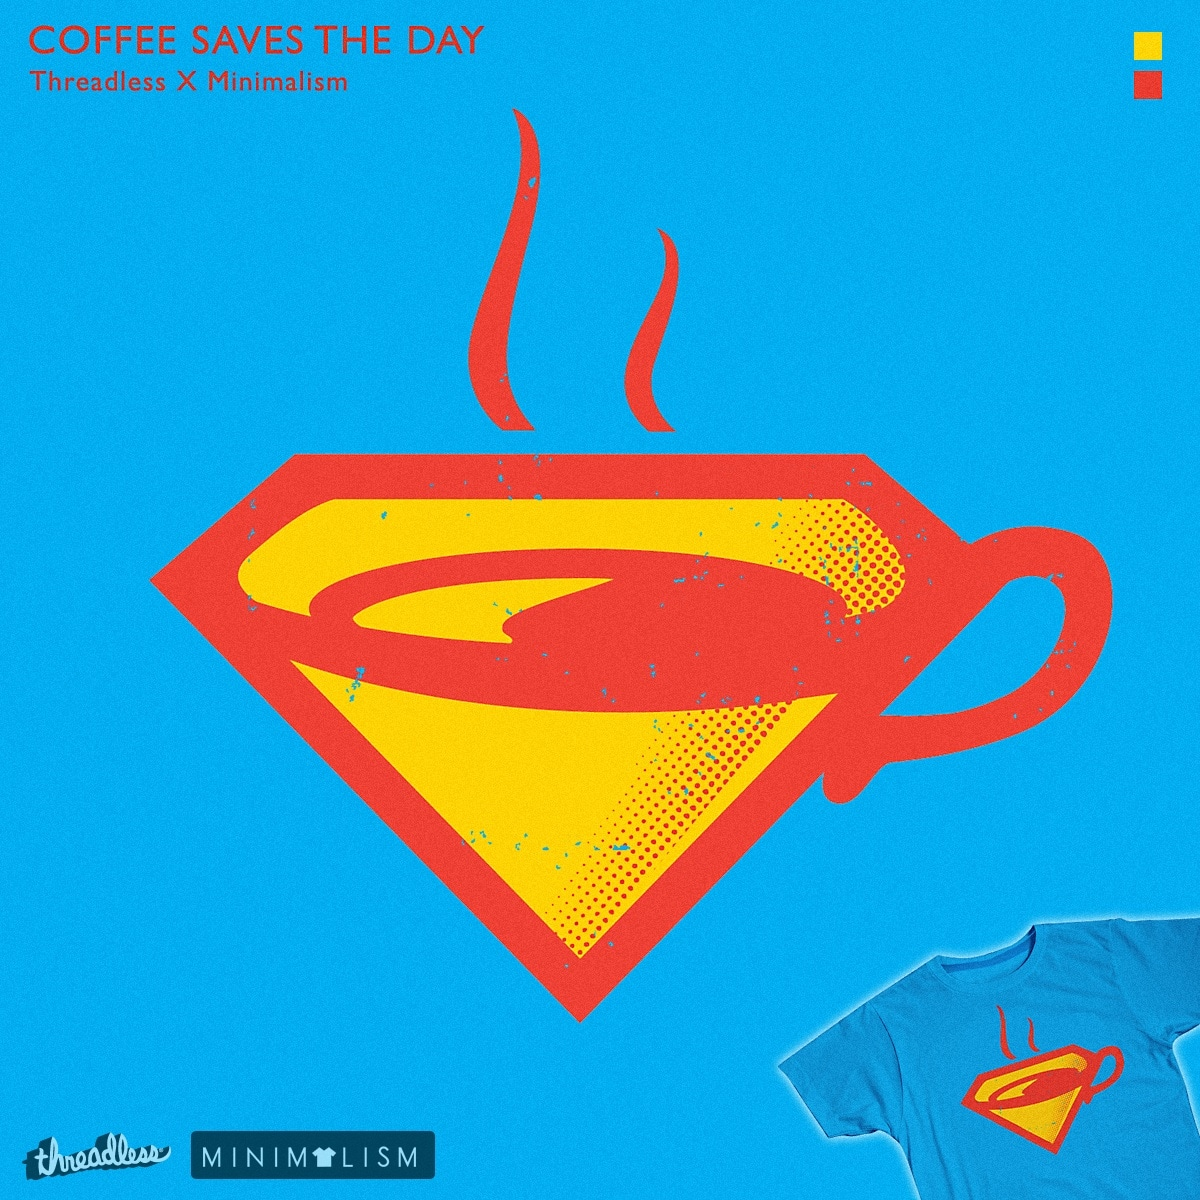 Coffee Saves The Day! by rhobdesigns on Threadless